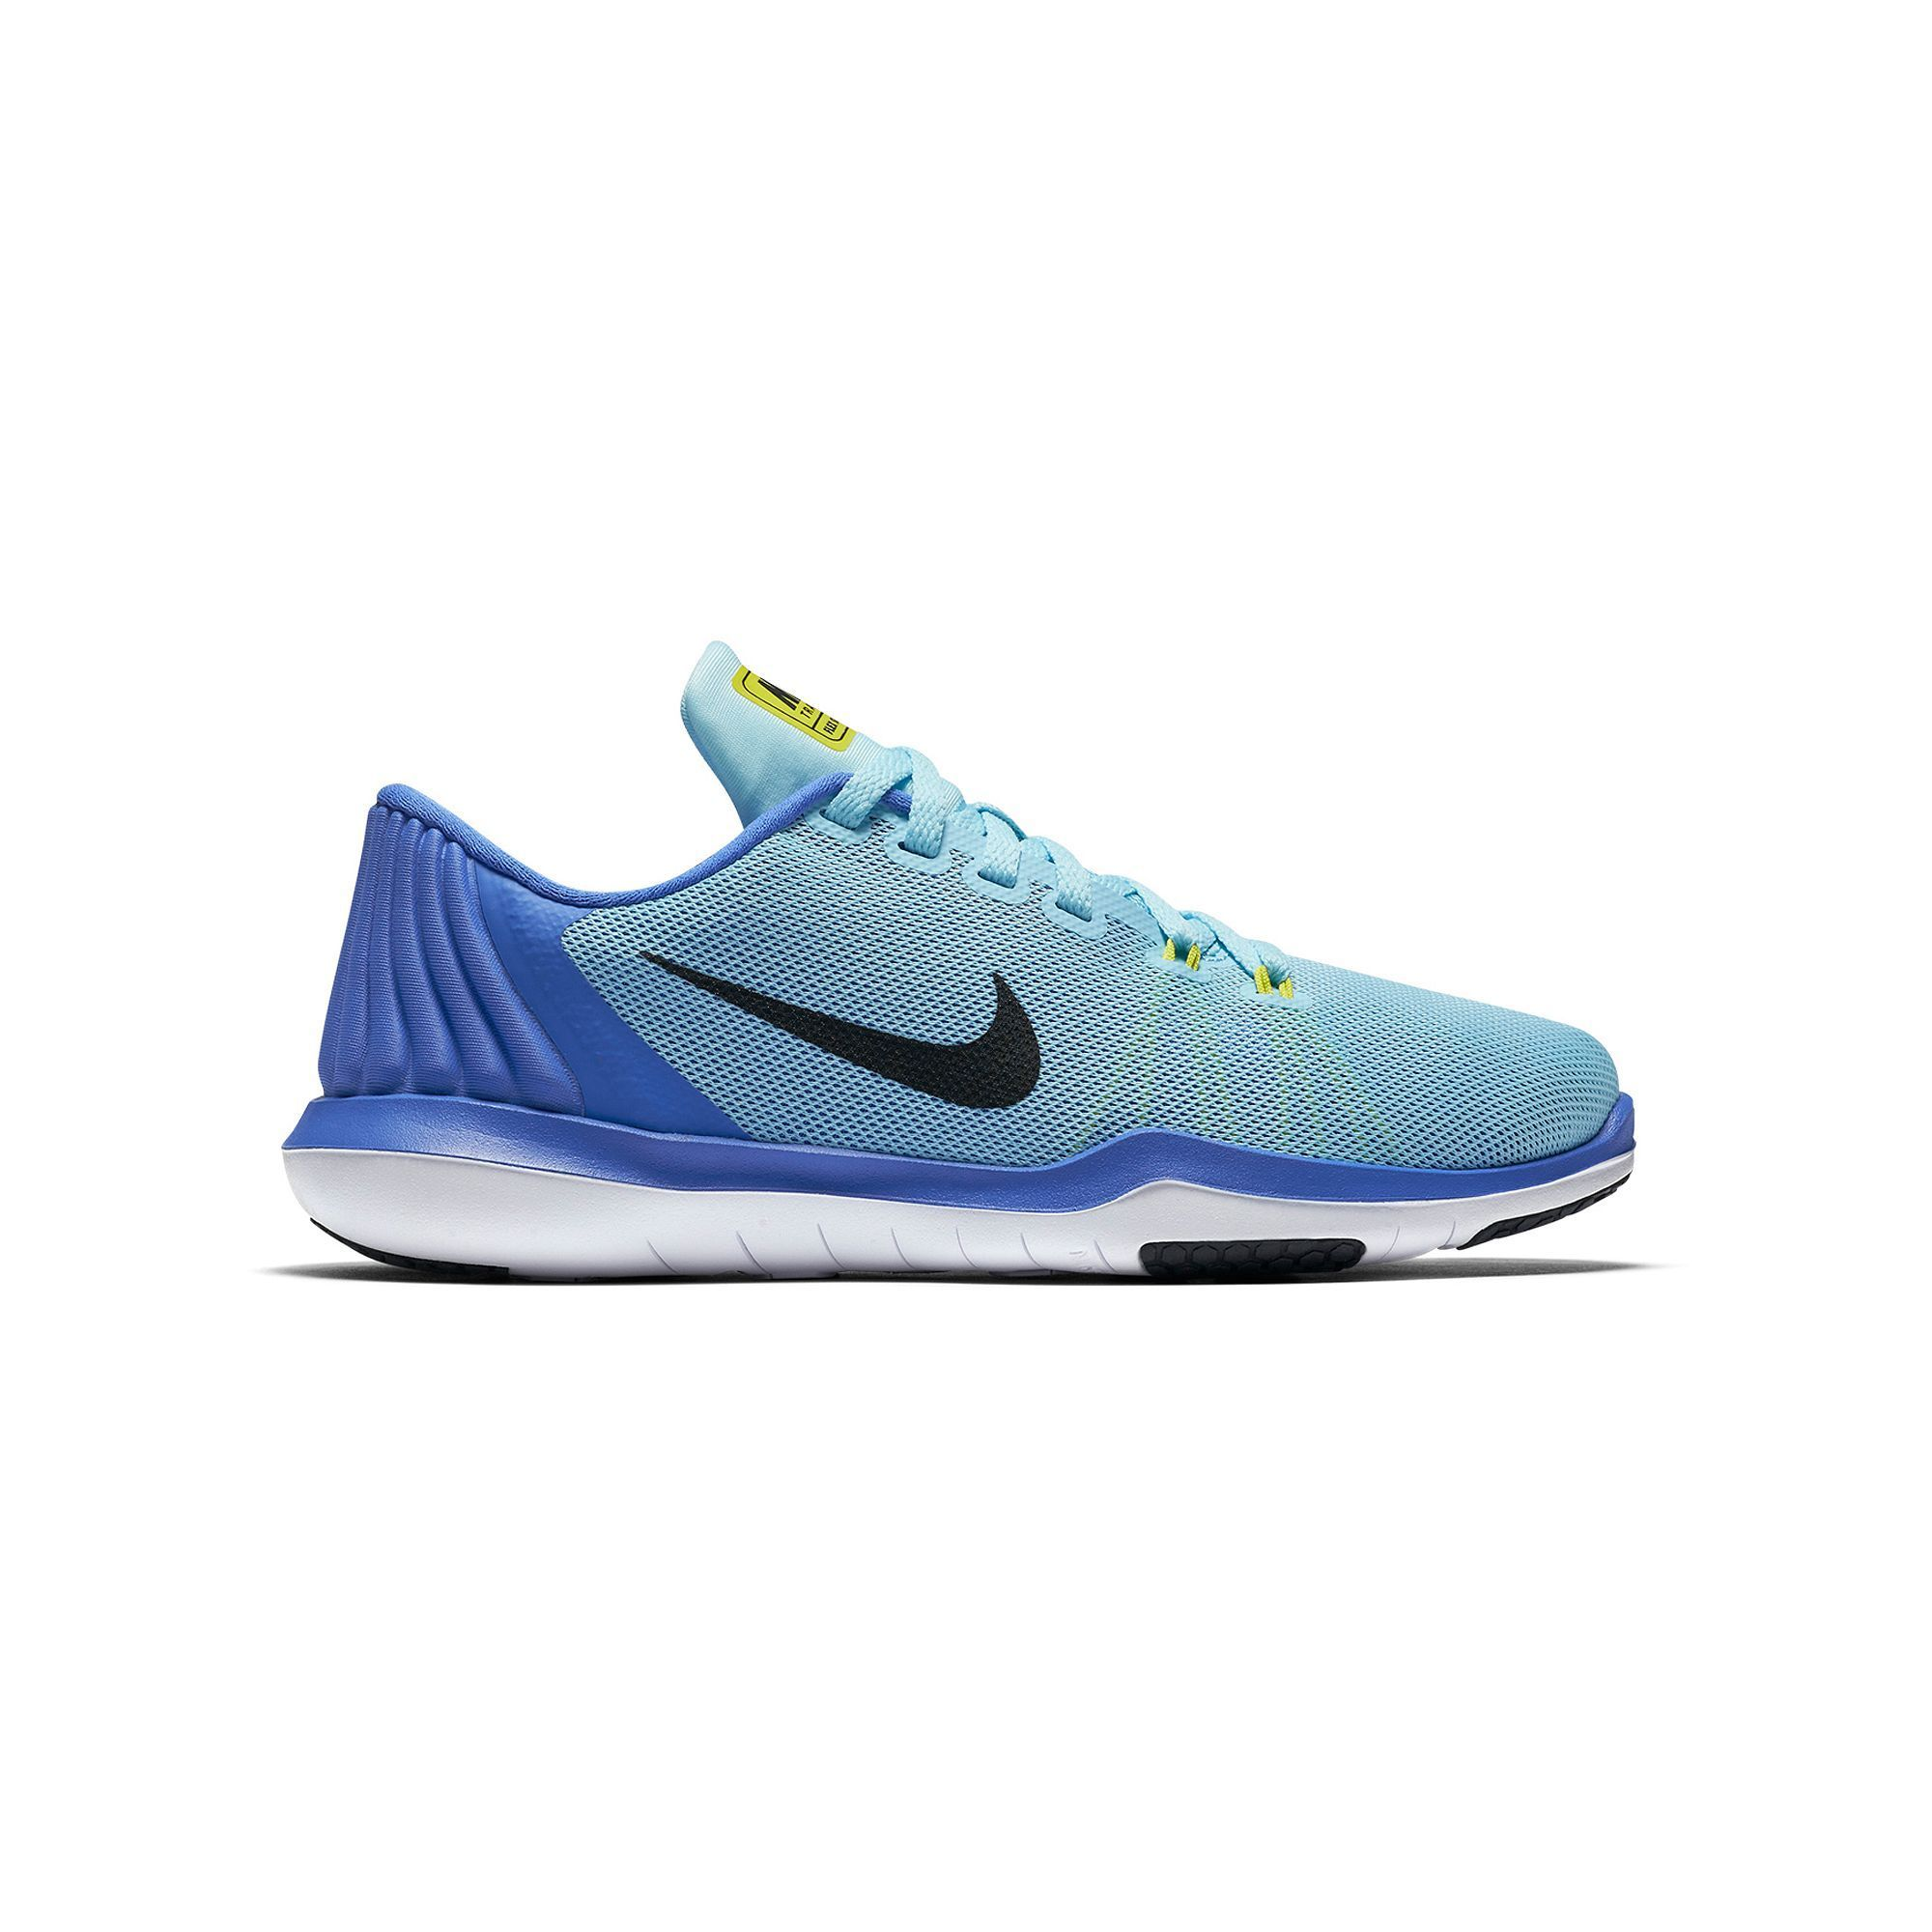 Nike ZOOM FIT TRAINING sz 6.5 BLUE TEAL WHITE Running Shoes Sneakers